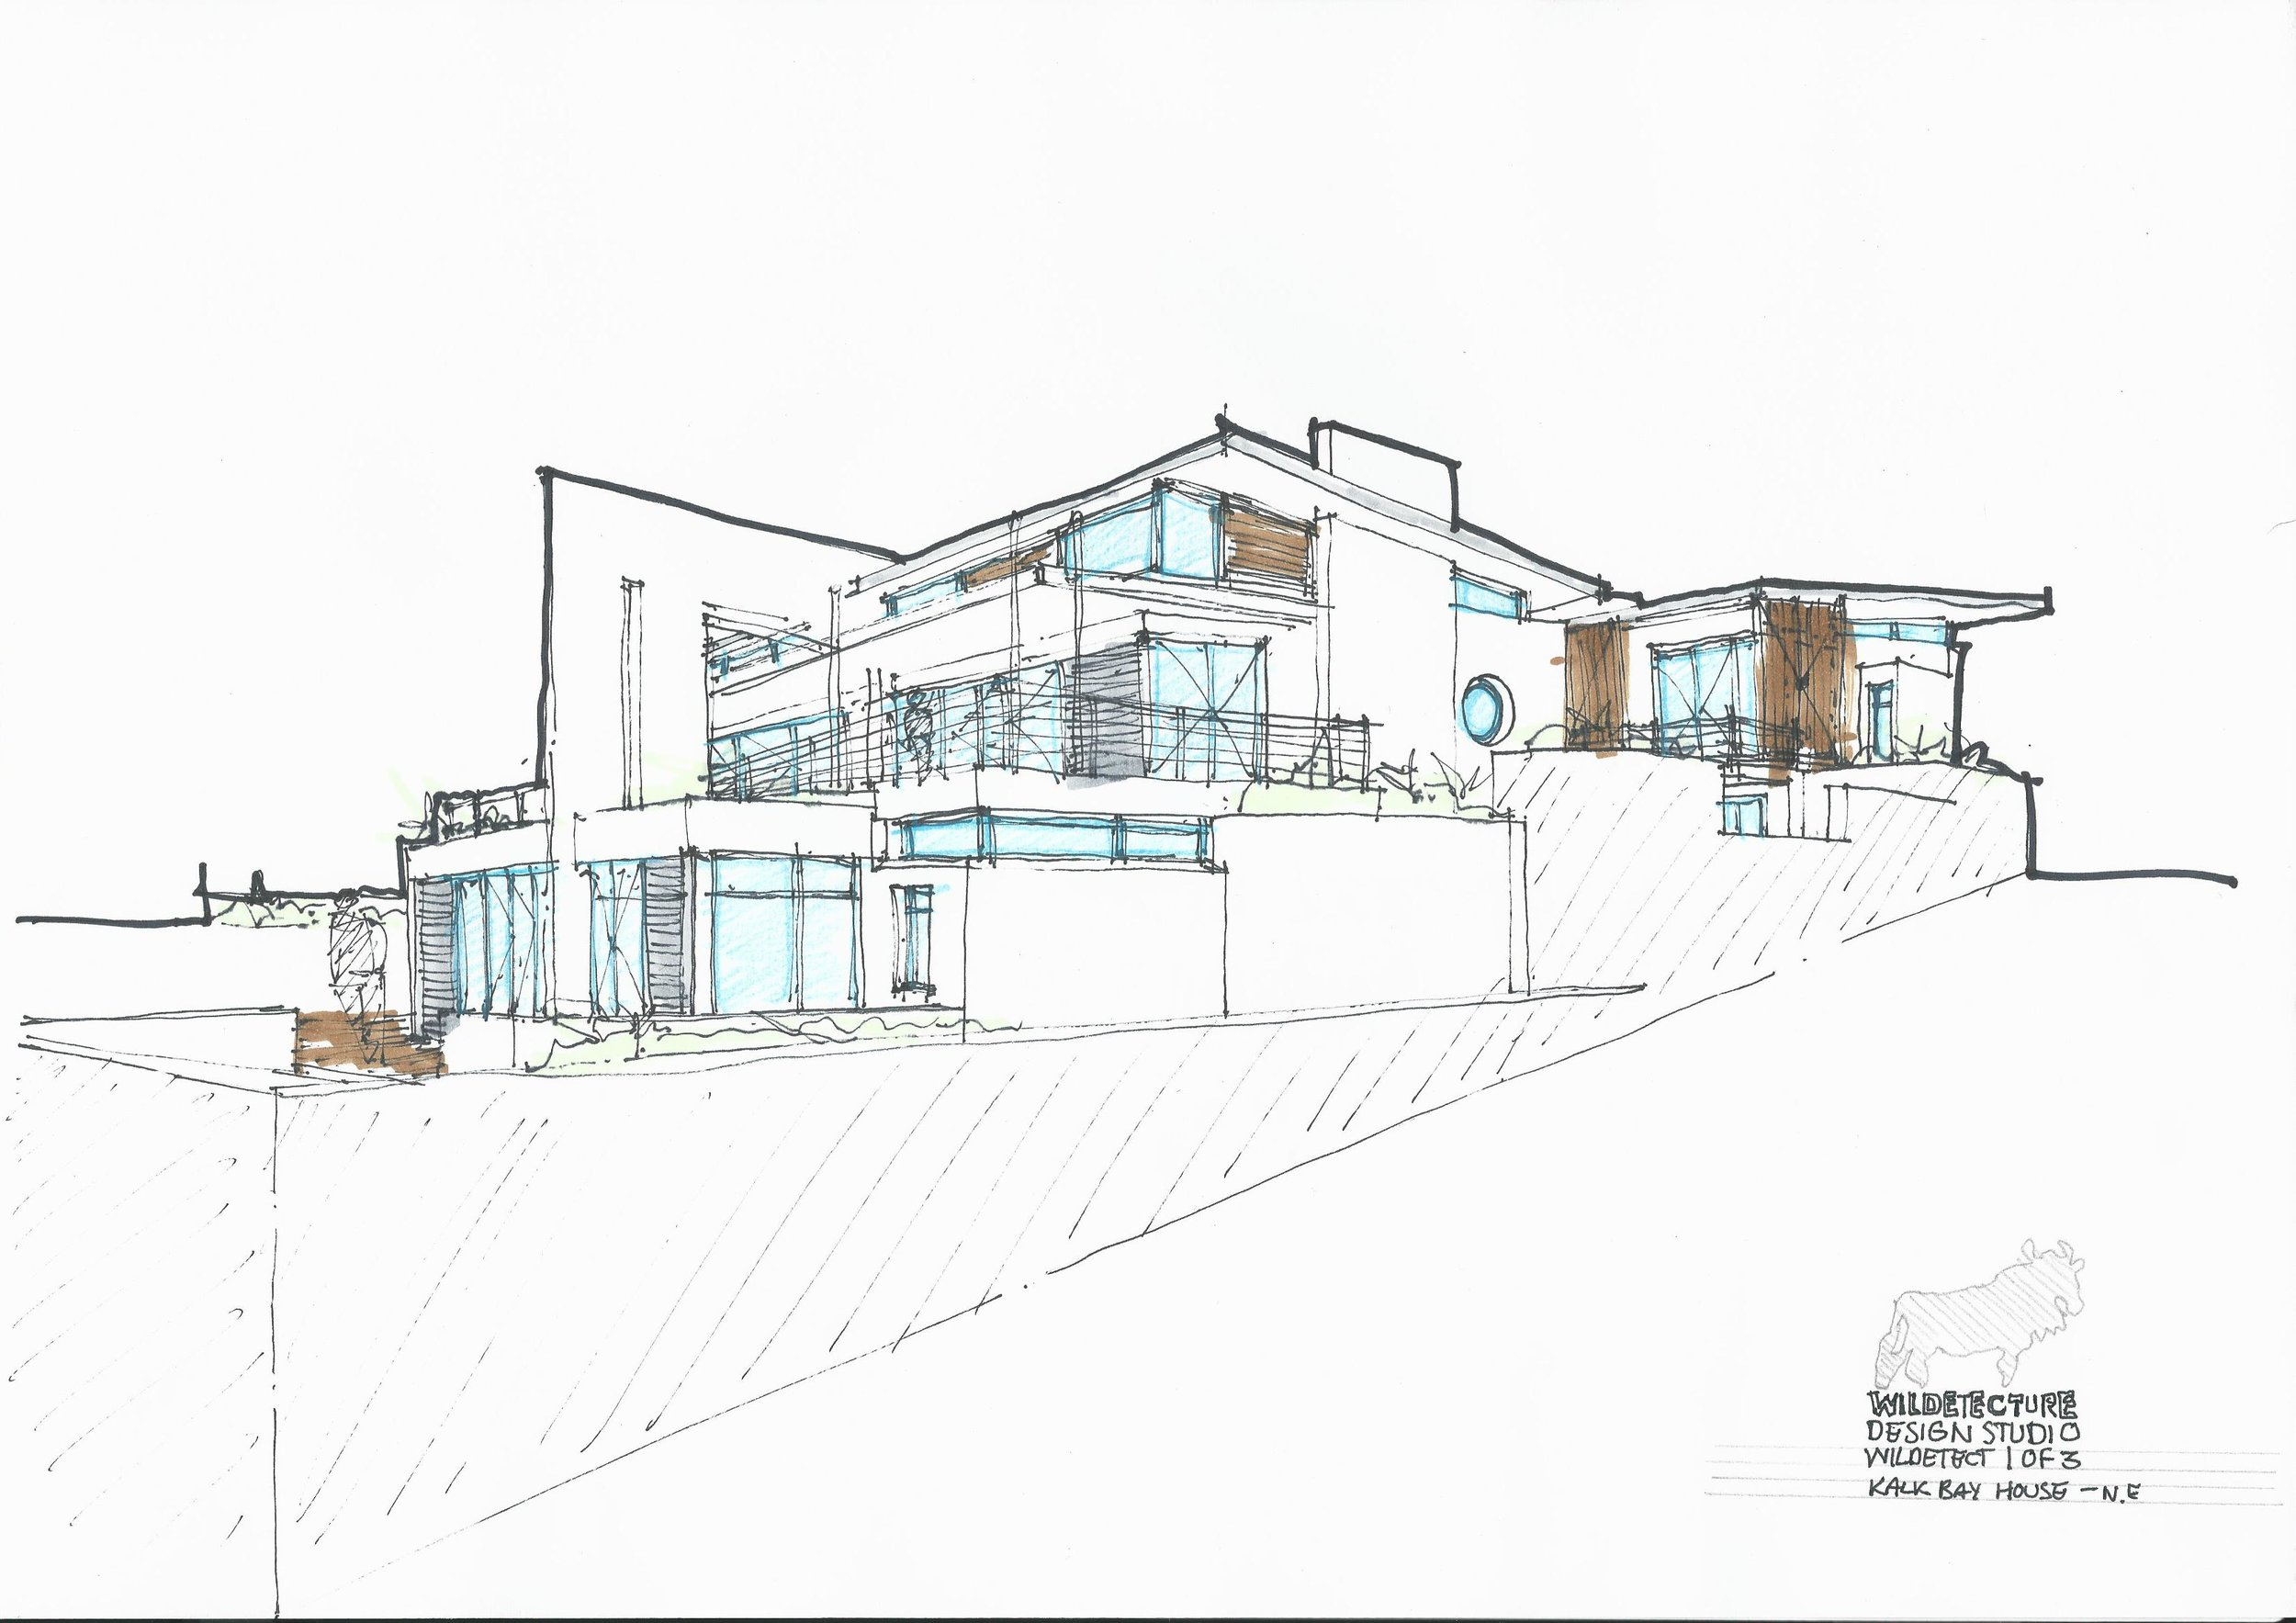 Kalk Bay House by Wildetect 1 of 3